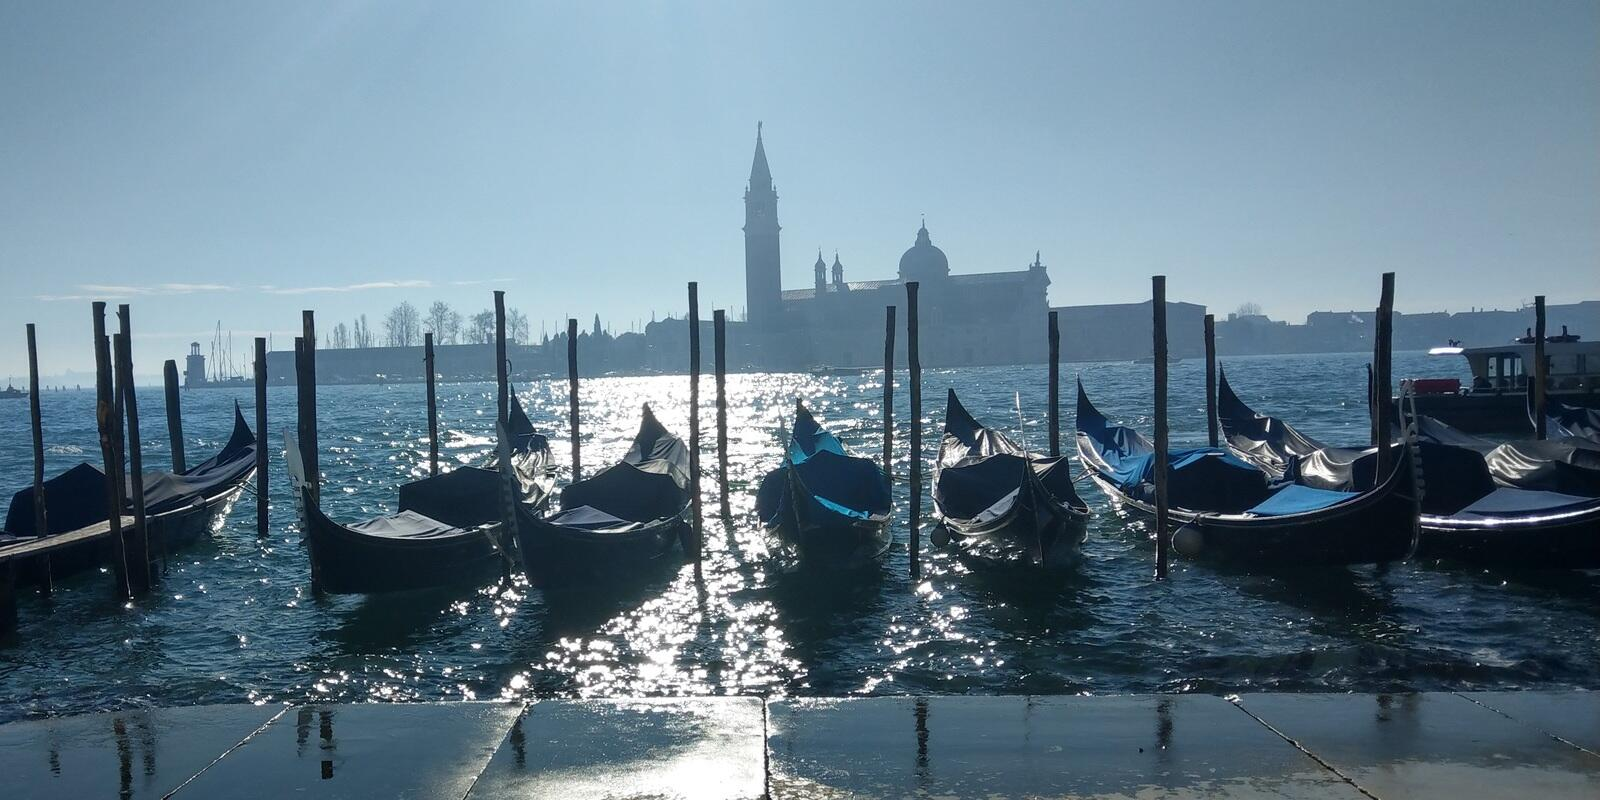 Weekend in Venice on a 15-meter sailboat